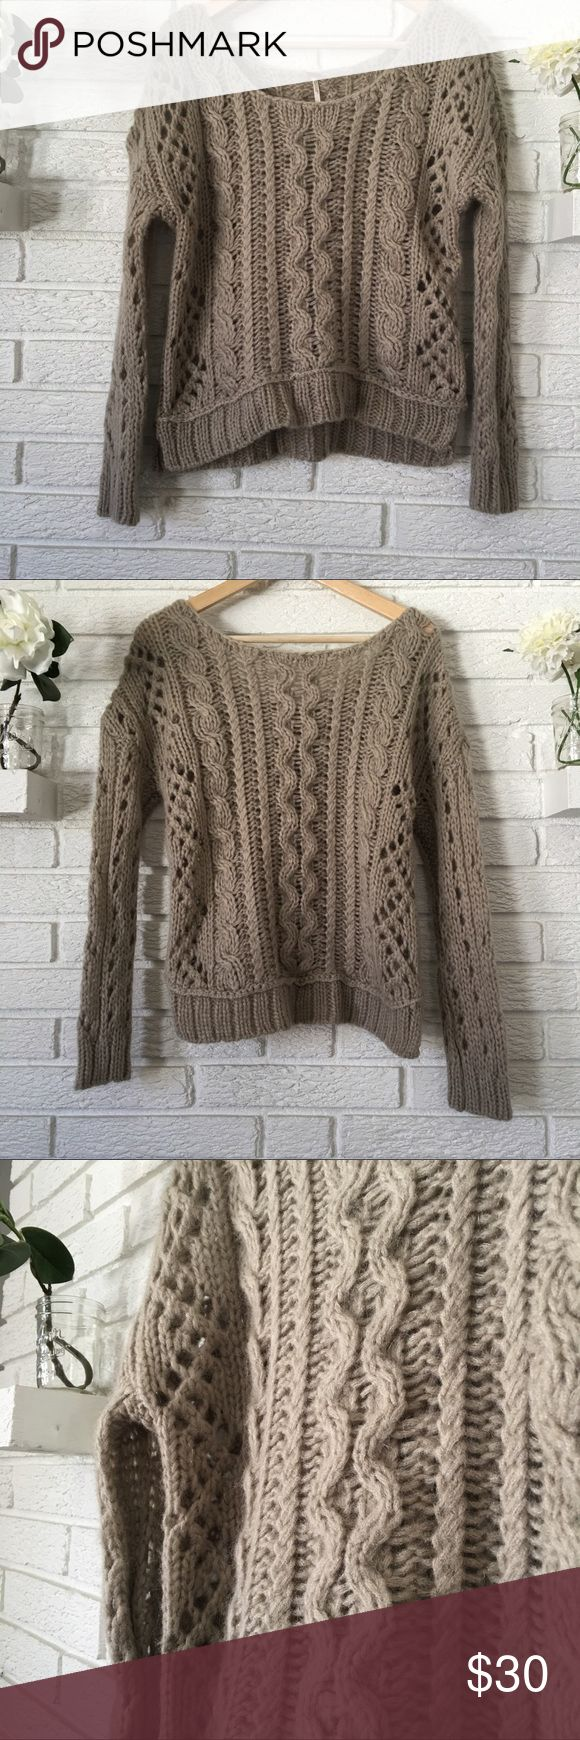 🎉SALE🎉 Free People Chunky Knit Sweater Adorable chunky knit sweater by Free People. So cozy! Tan. Drop shoulder. Slight fuzzies as pictured, but overall in great condition! Free People Sweaters